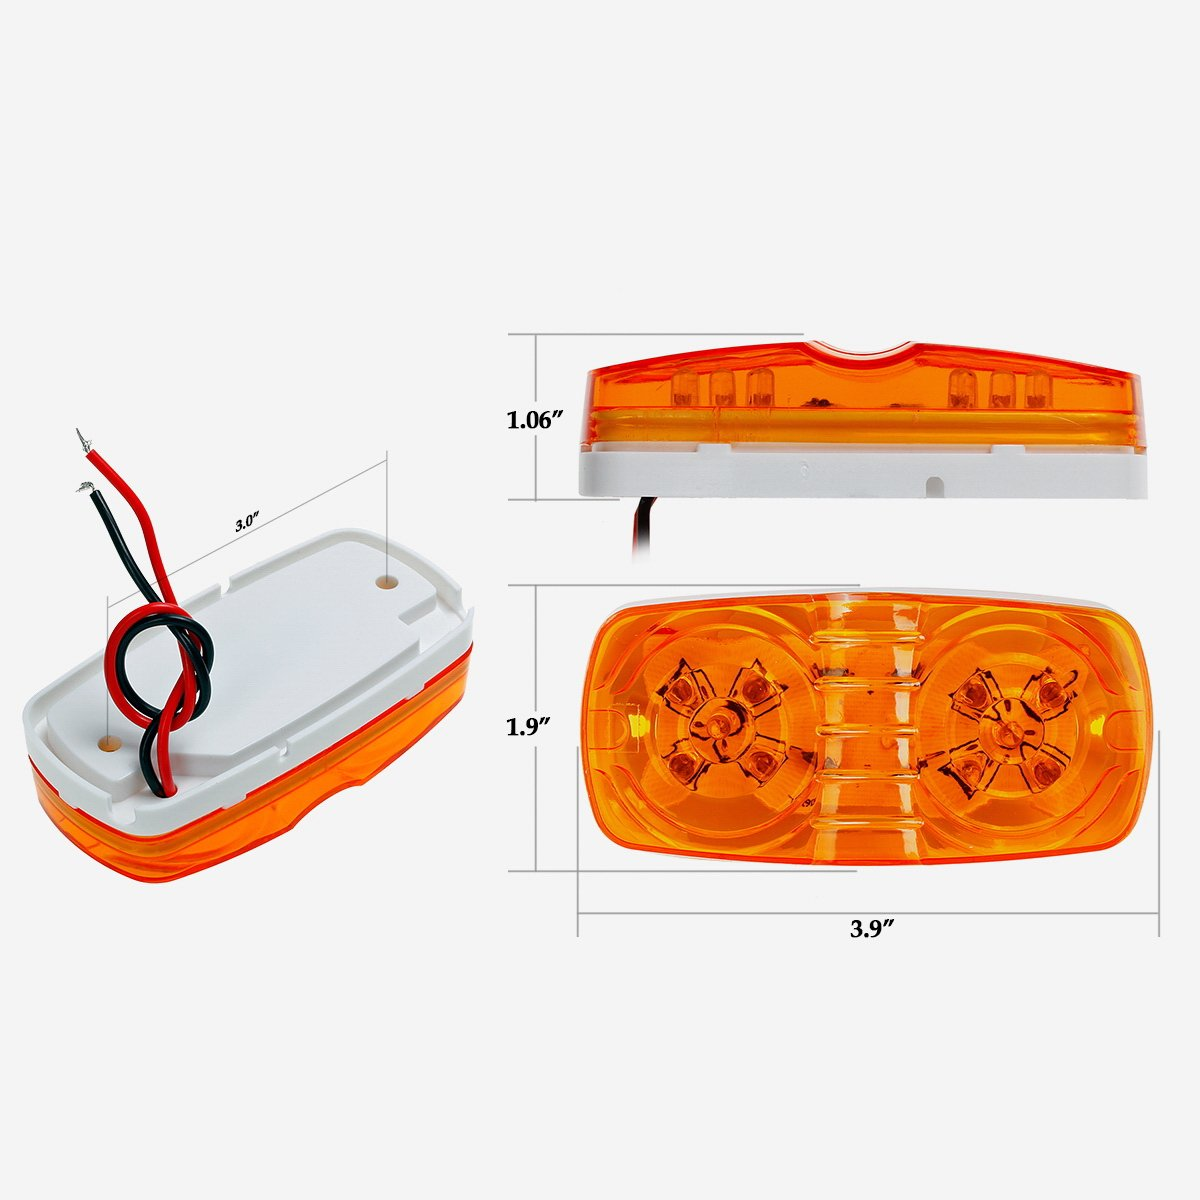 Partsam 13x Trailer Marker Led Light Double Bullseye Amber Red 10led Wiring A With Lights And Side 4x2 Rectangular Rectangle